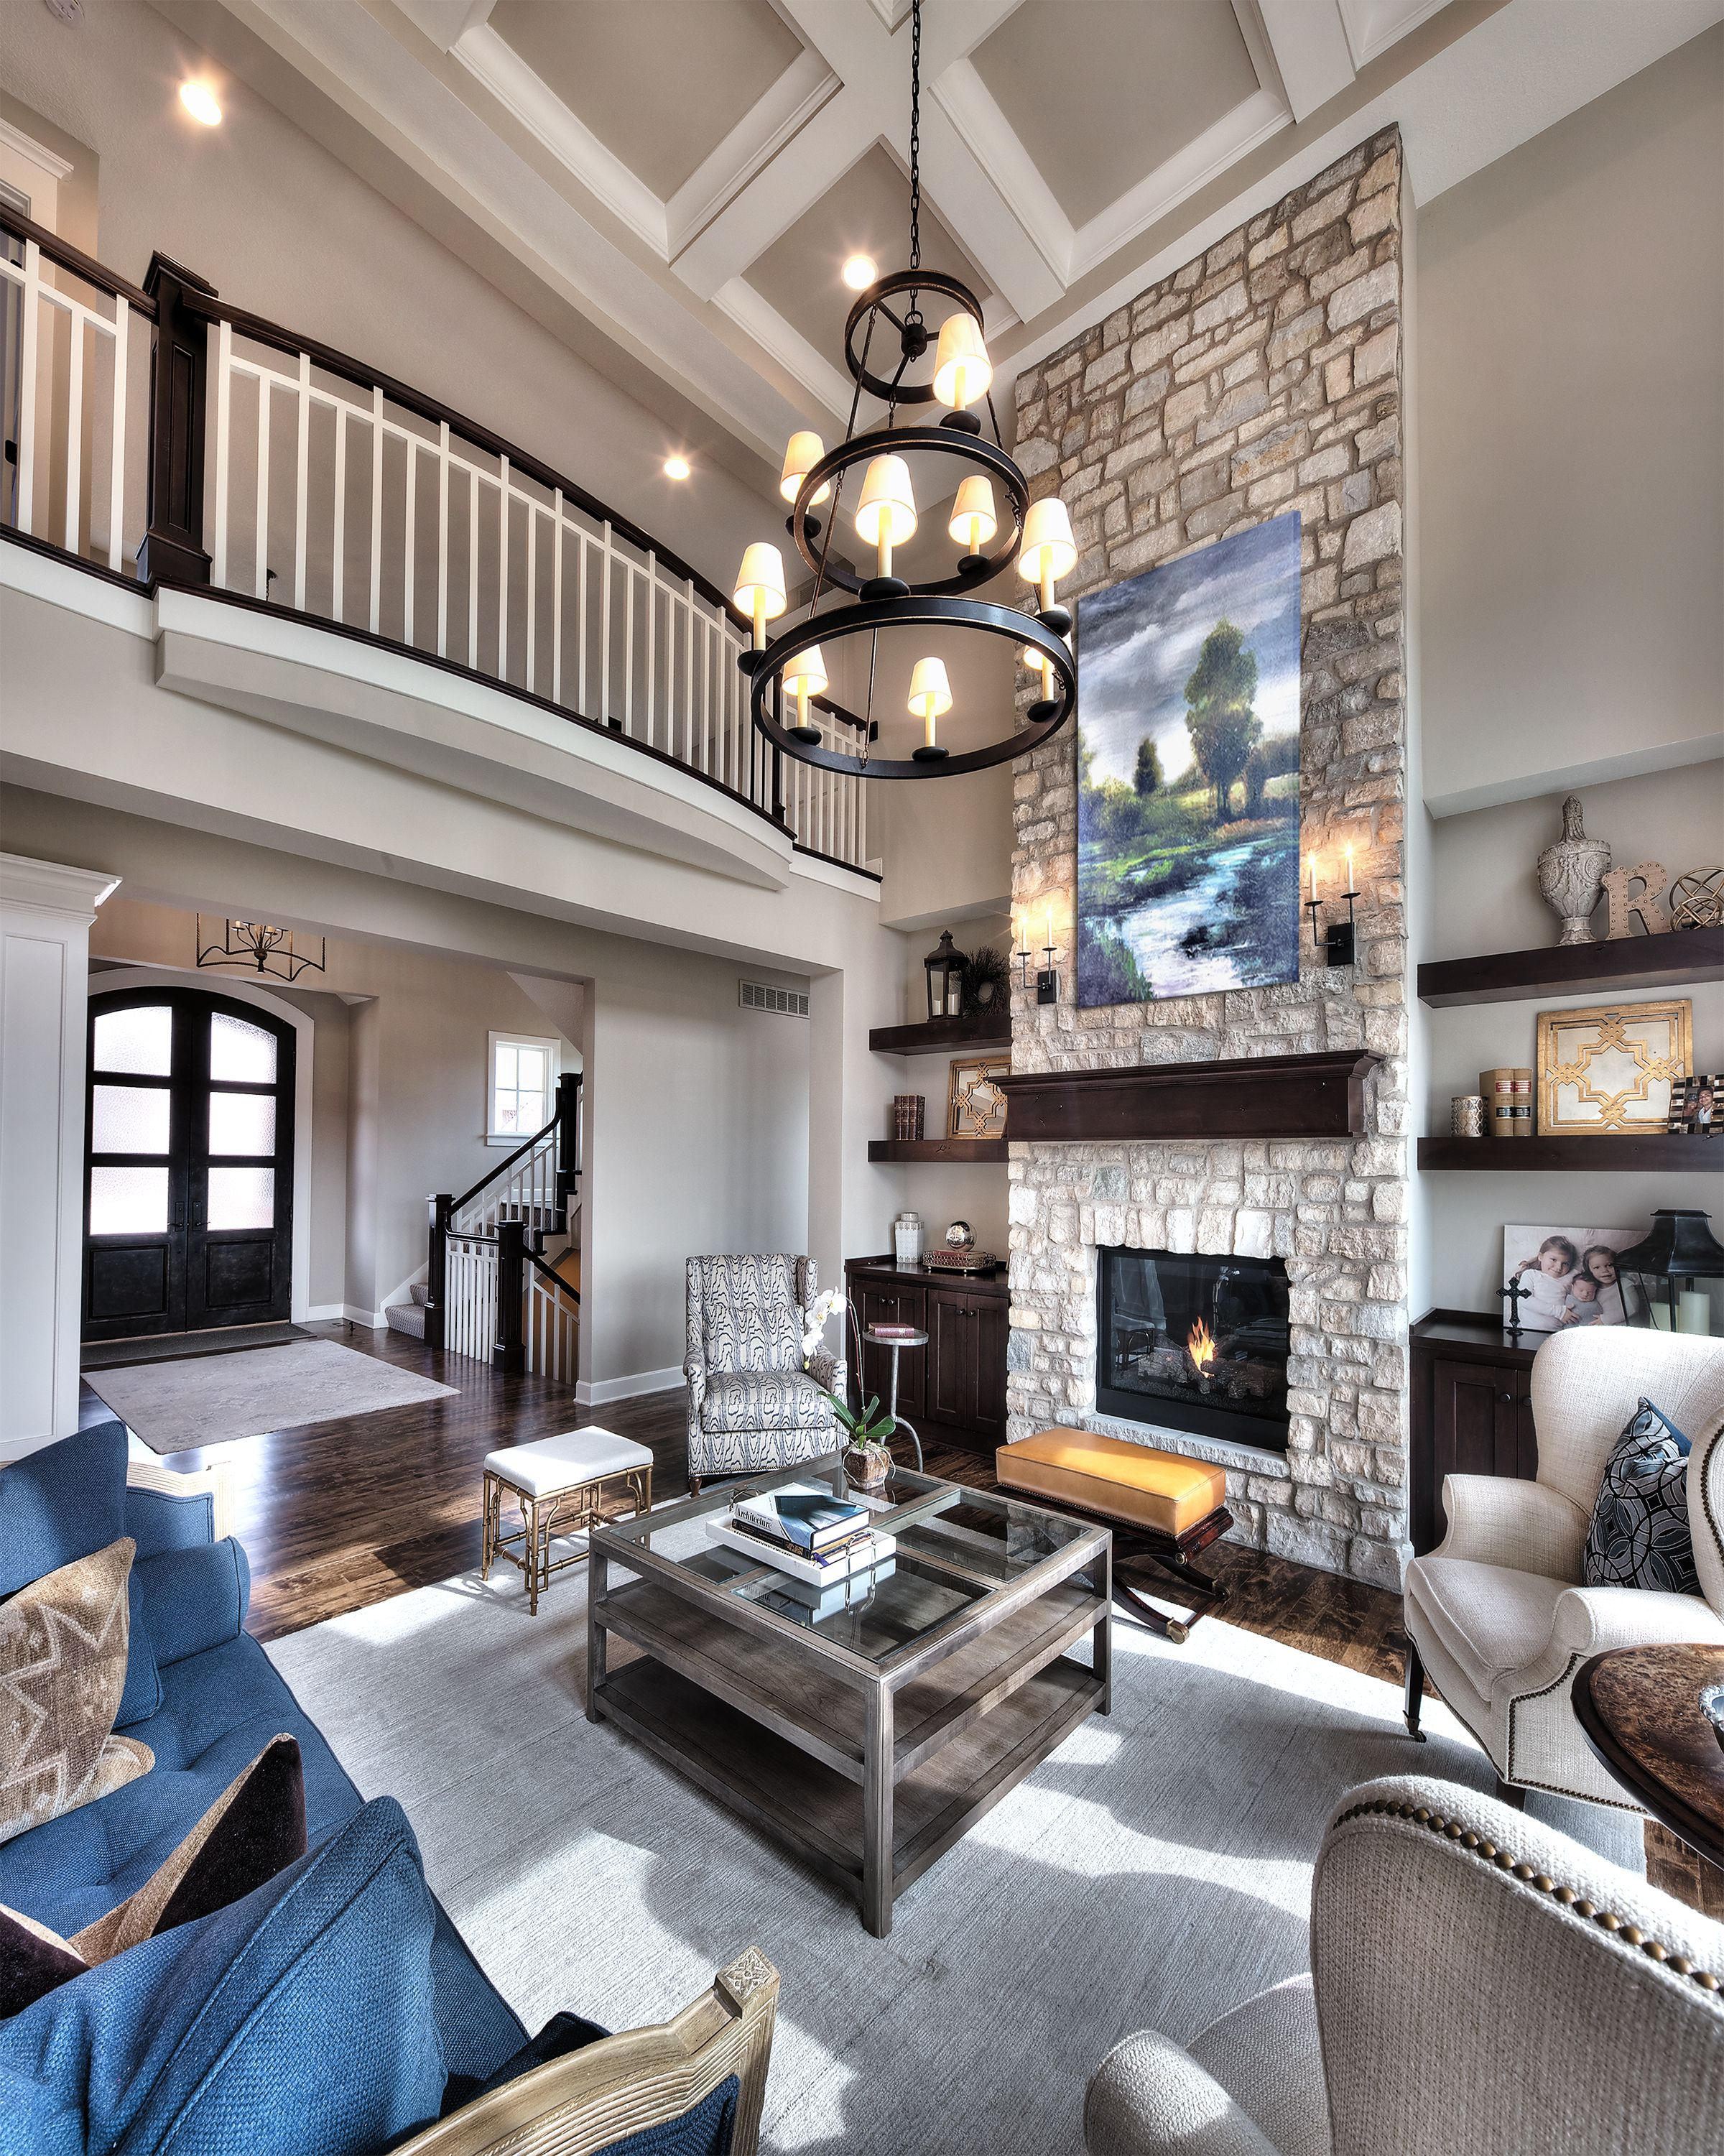 Fireplaces Great Rooms And Room: Great Room: Open Floor Plan, Floor To Ceiling Stone Fireplace, Overlook From Upper Level